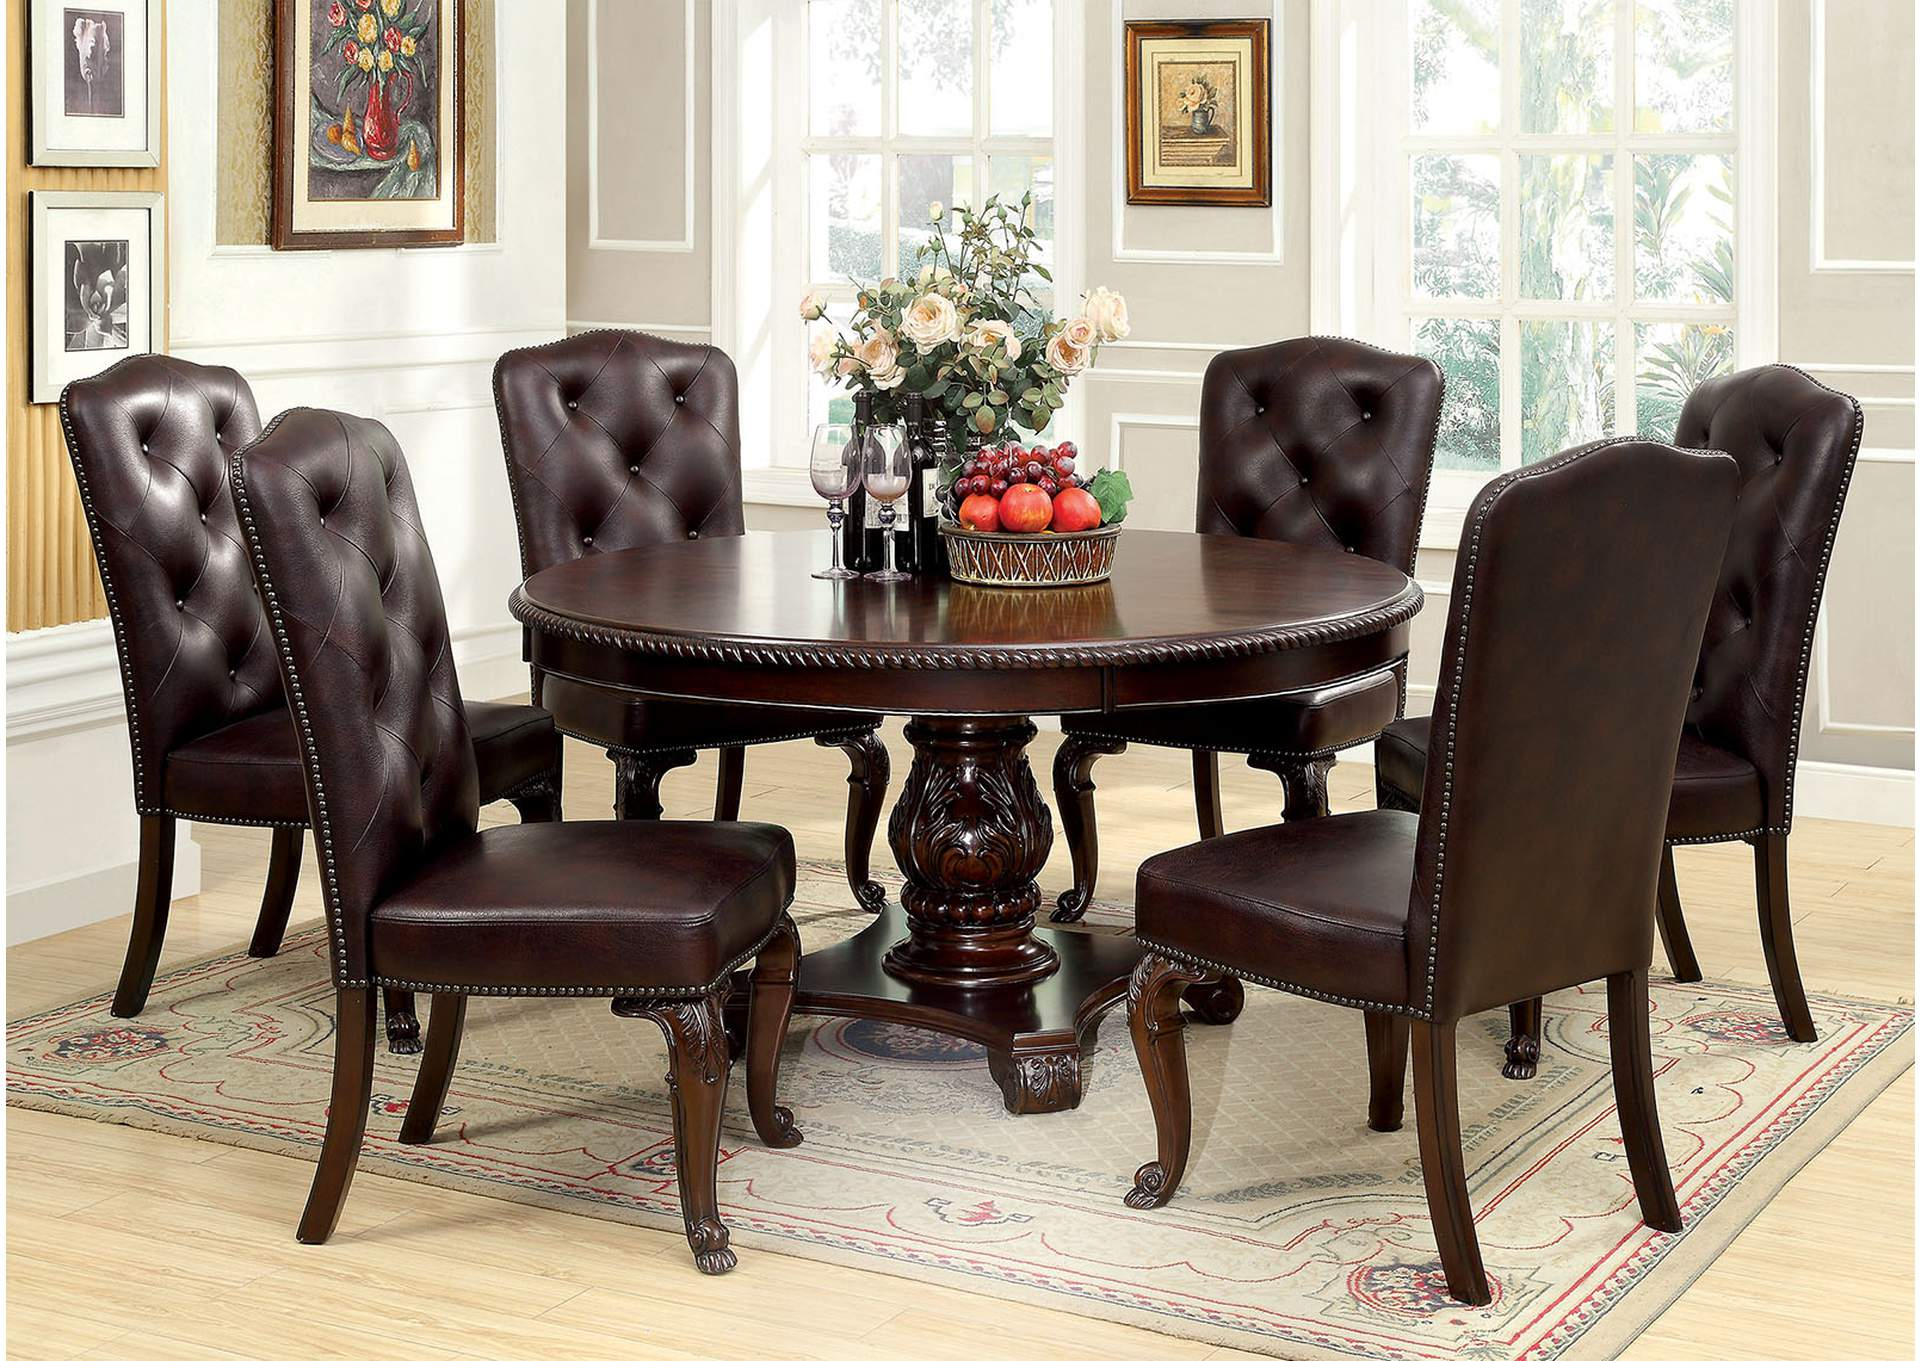 Bellagio Round Dining Table w/6 Leatherette Side Chairs,Furniture of America